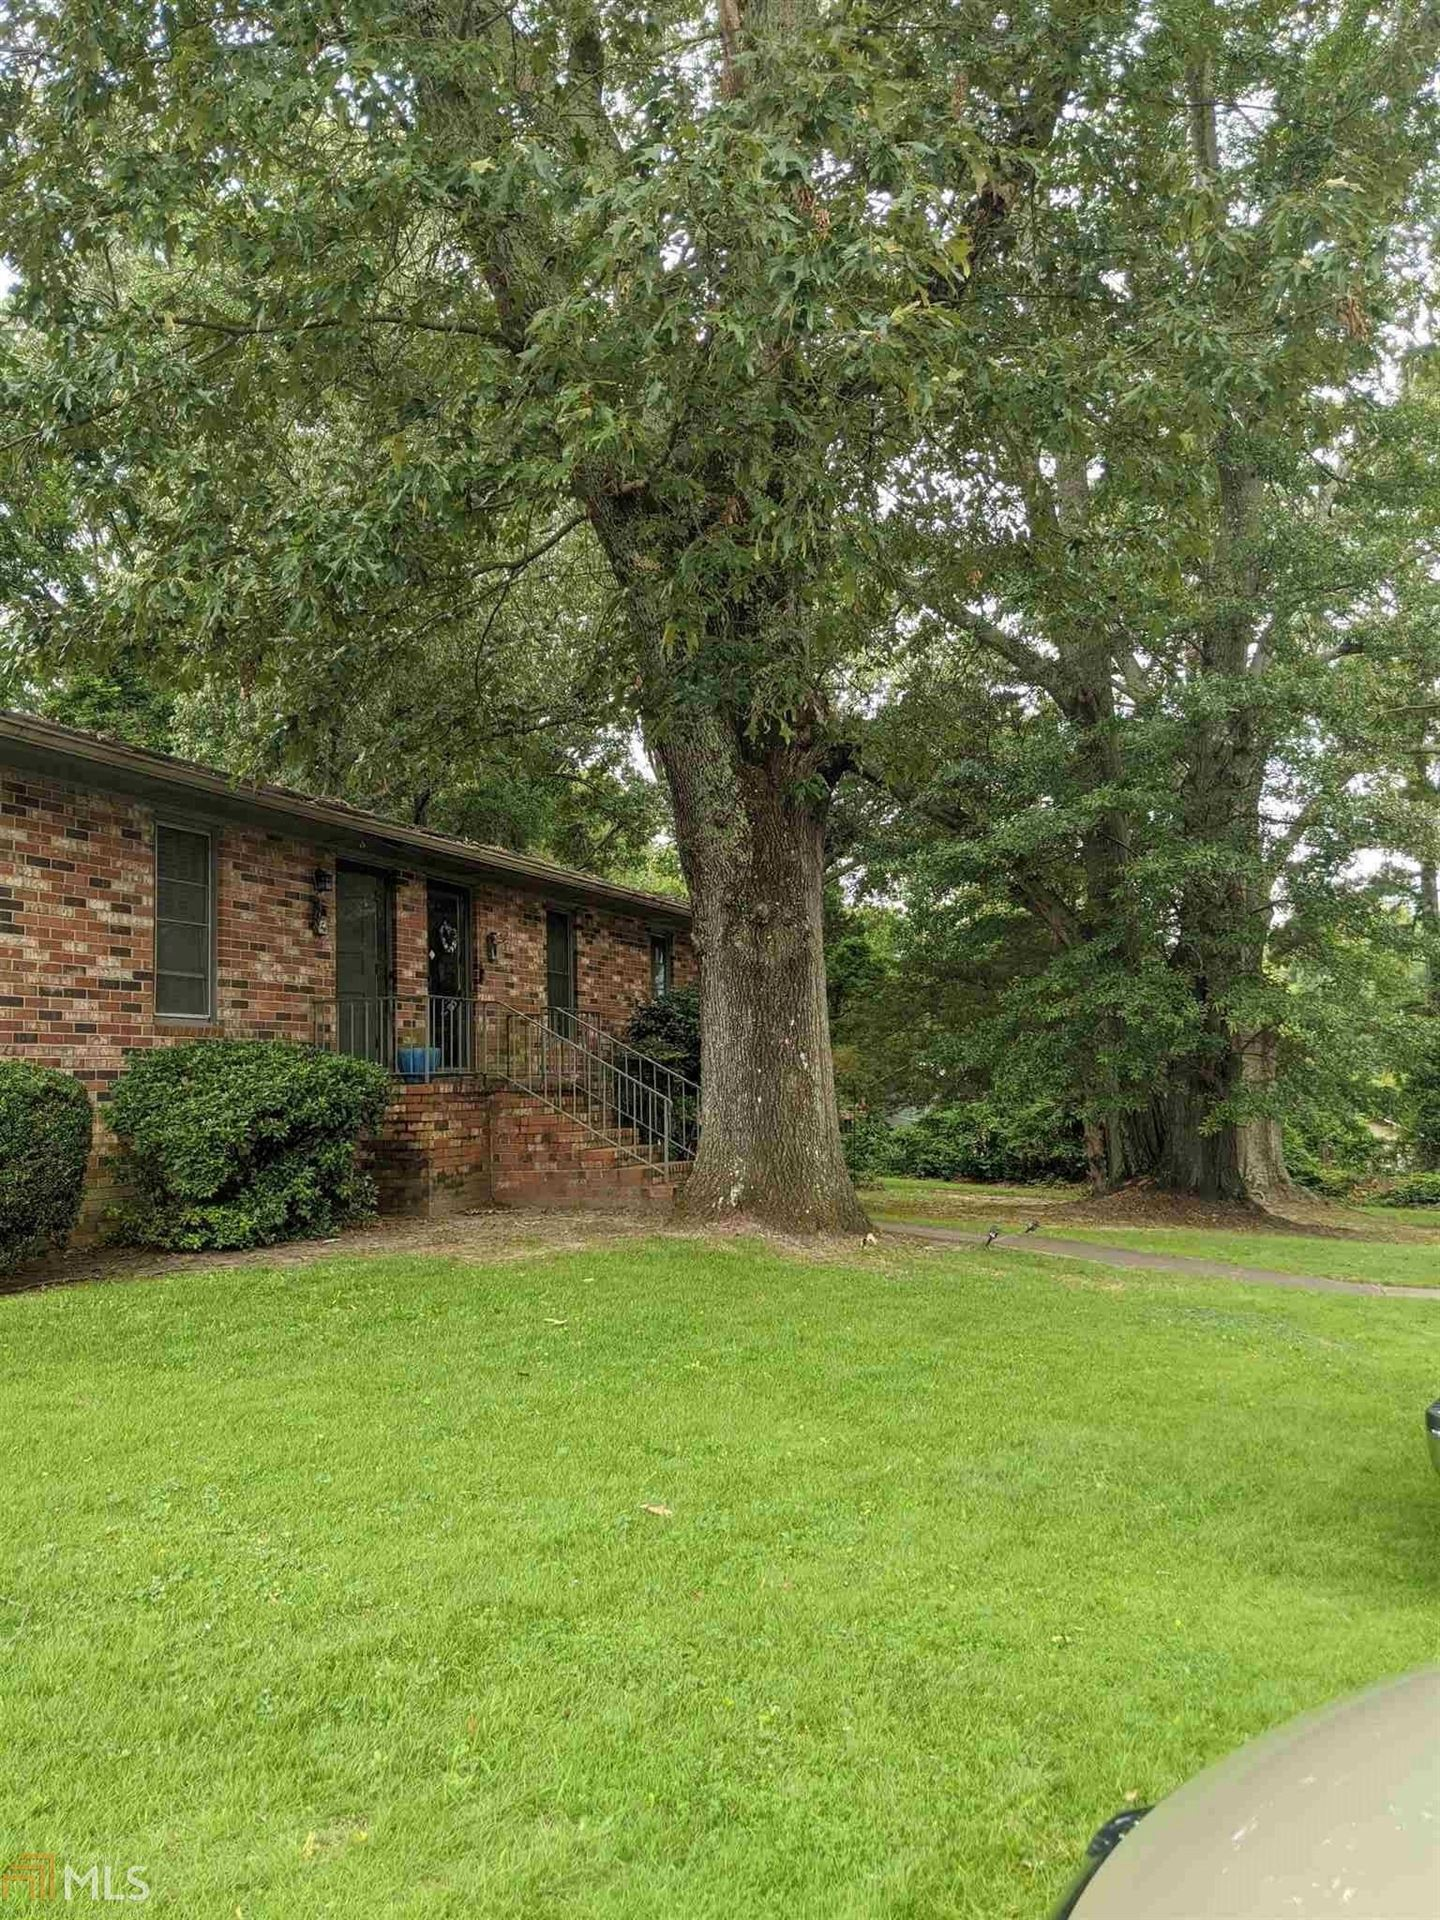 1091 Oakland Ave, Conyers, GA 30012 - #: 8827921